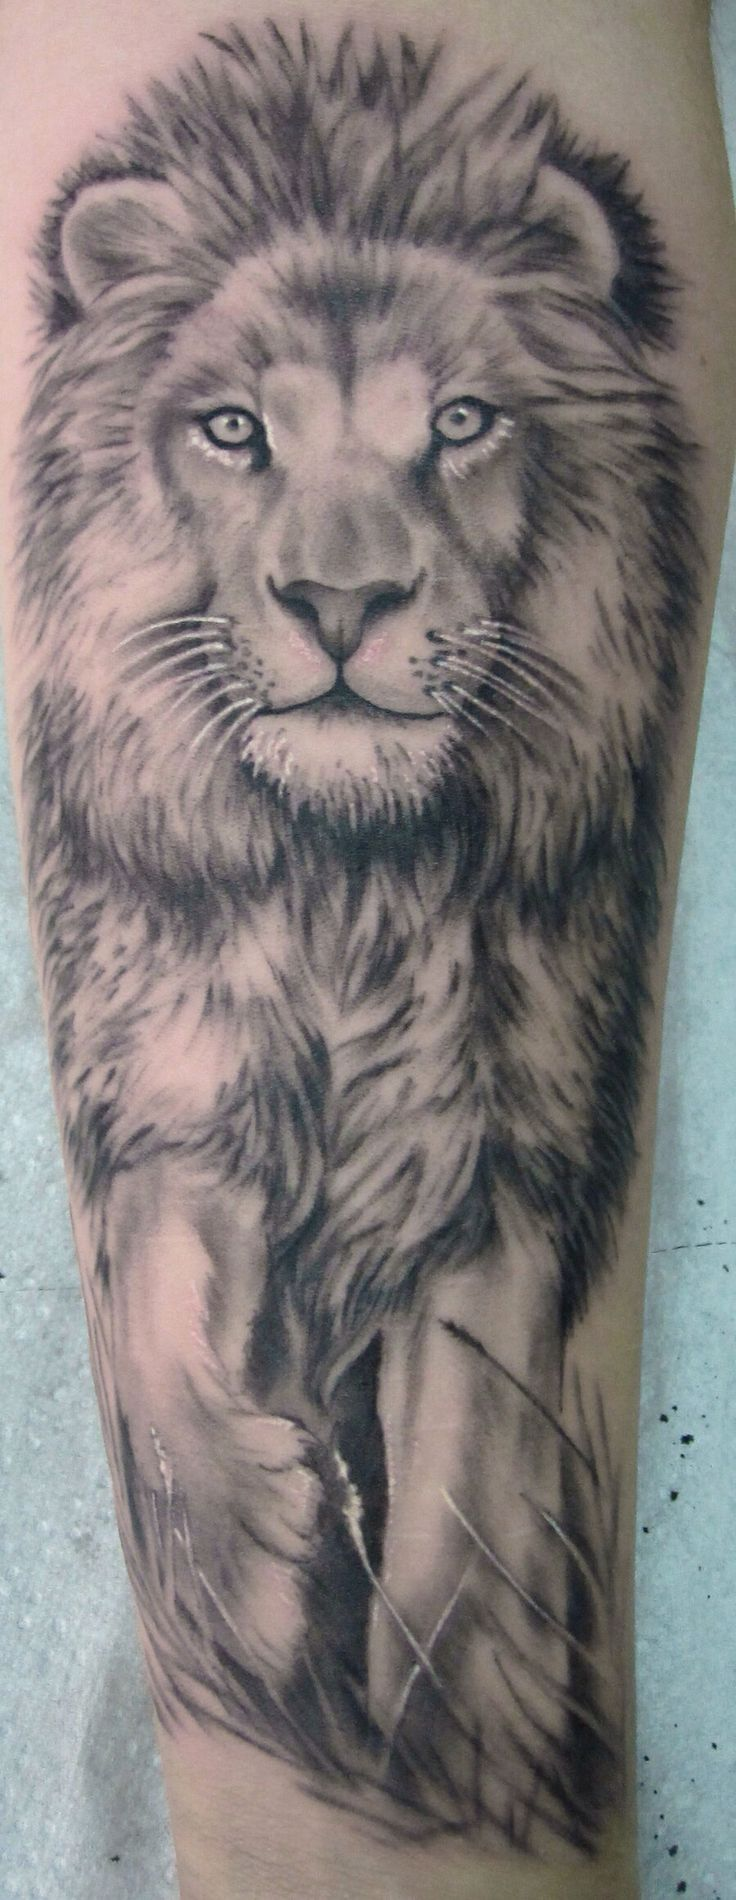 Black and white lion tattoo tattoomagz for Black and white lion tattoo